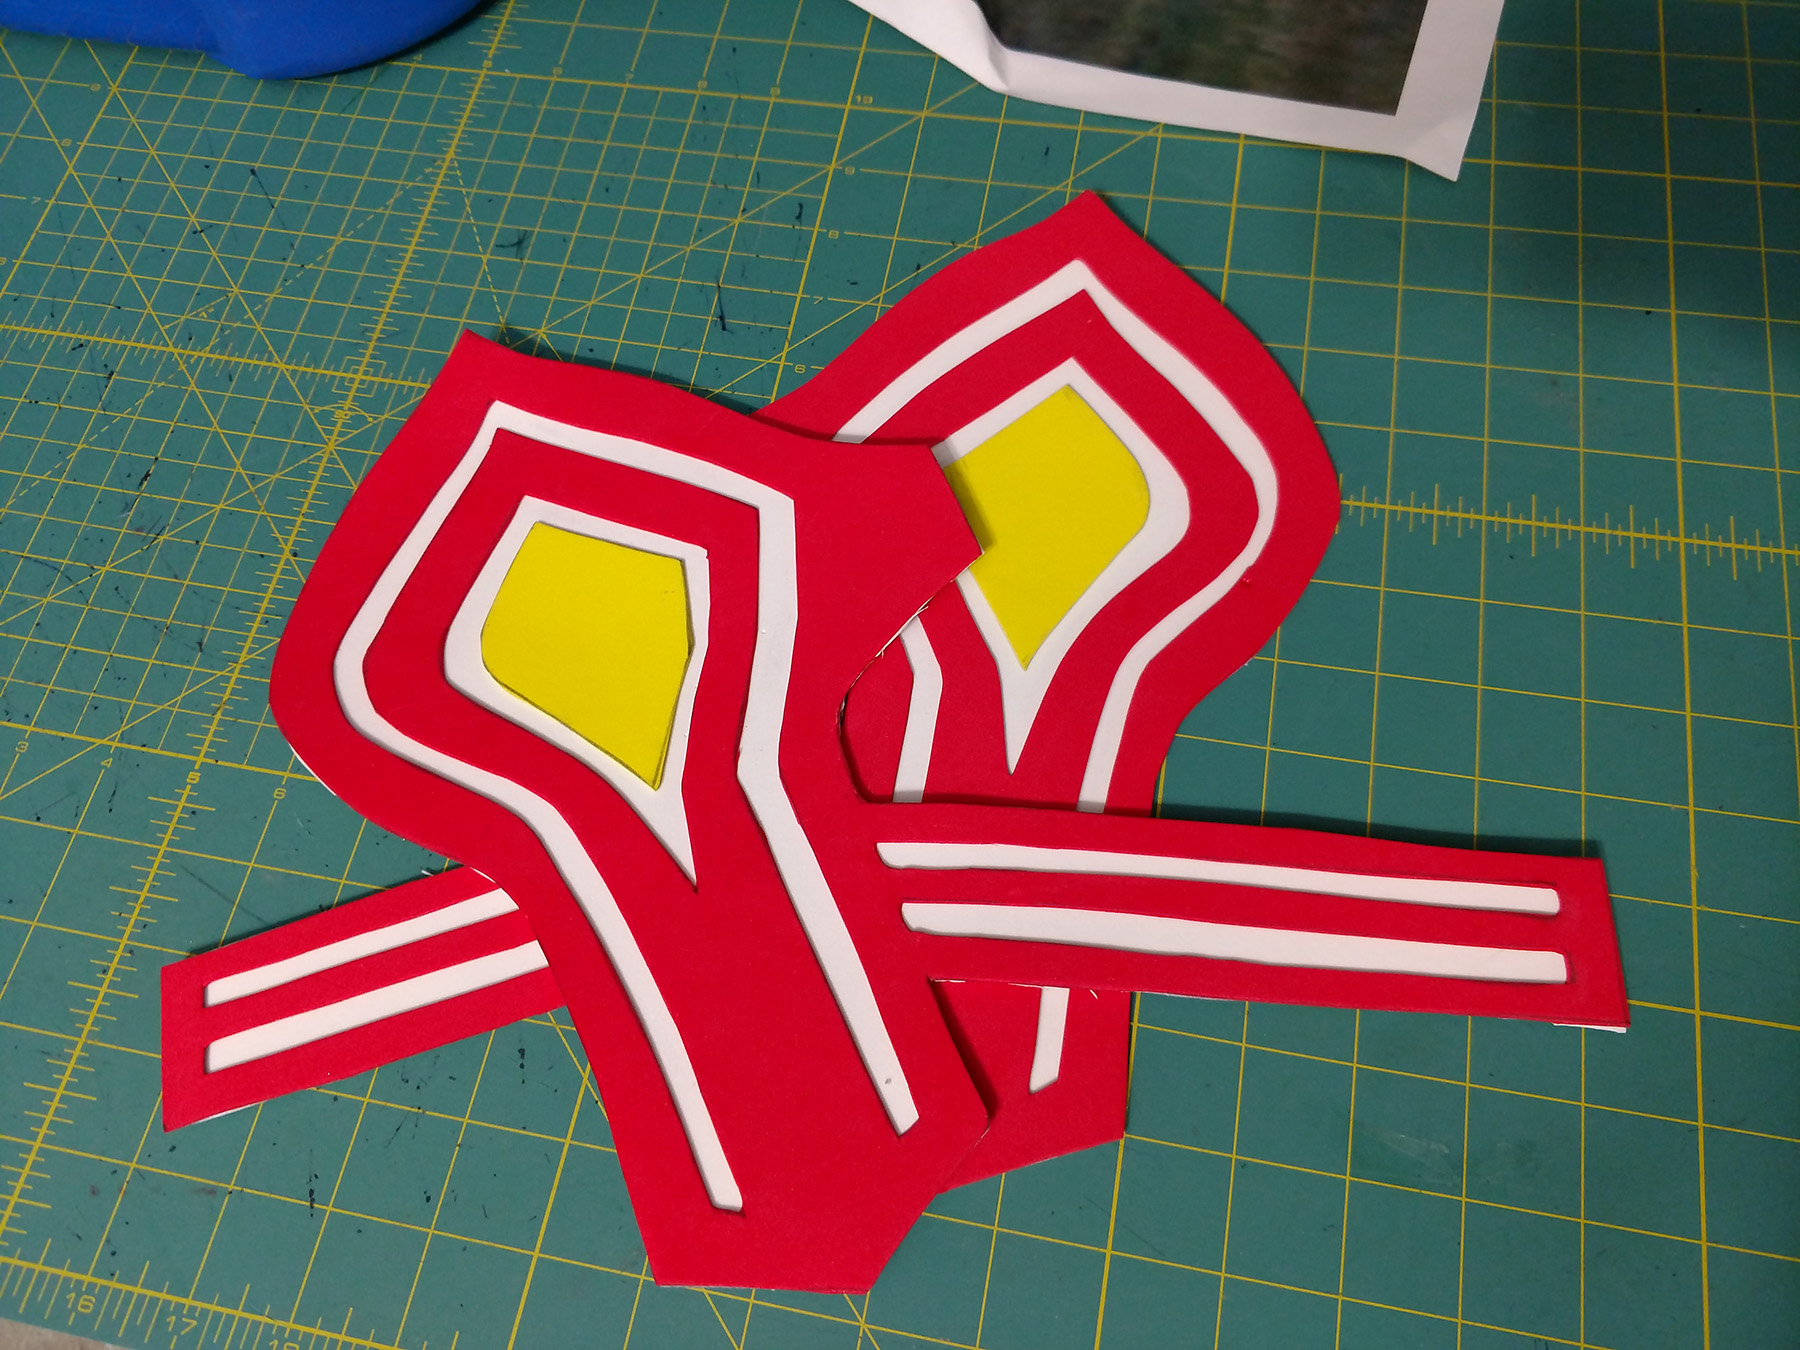 Two bas e bracers made from craft foam. Red and yellow design pieces have been glued down onto a white base piece.